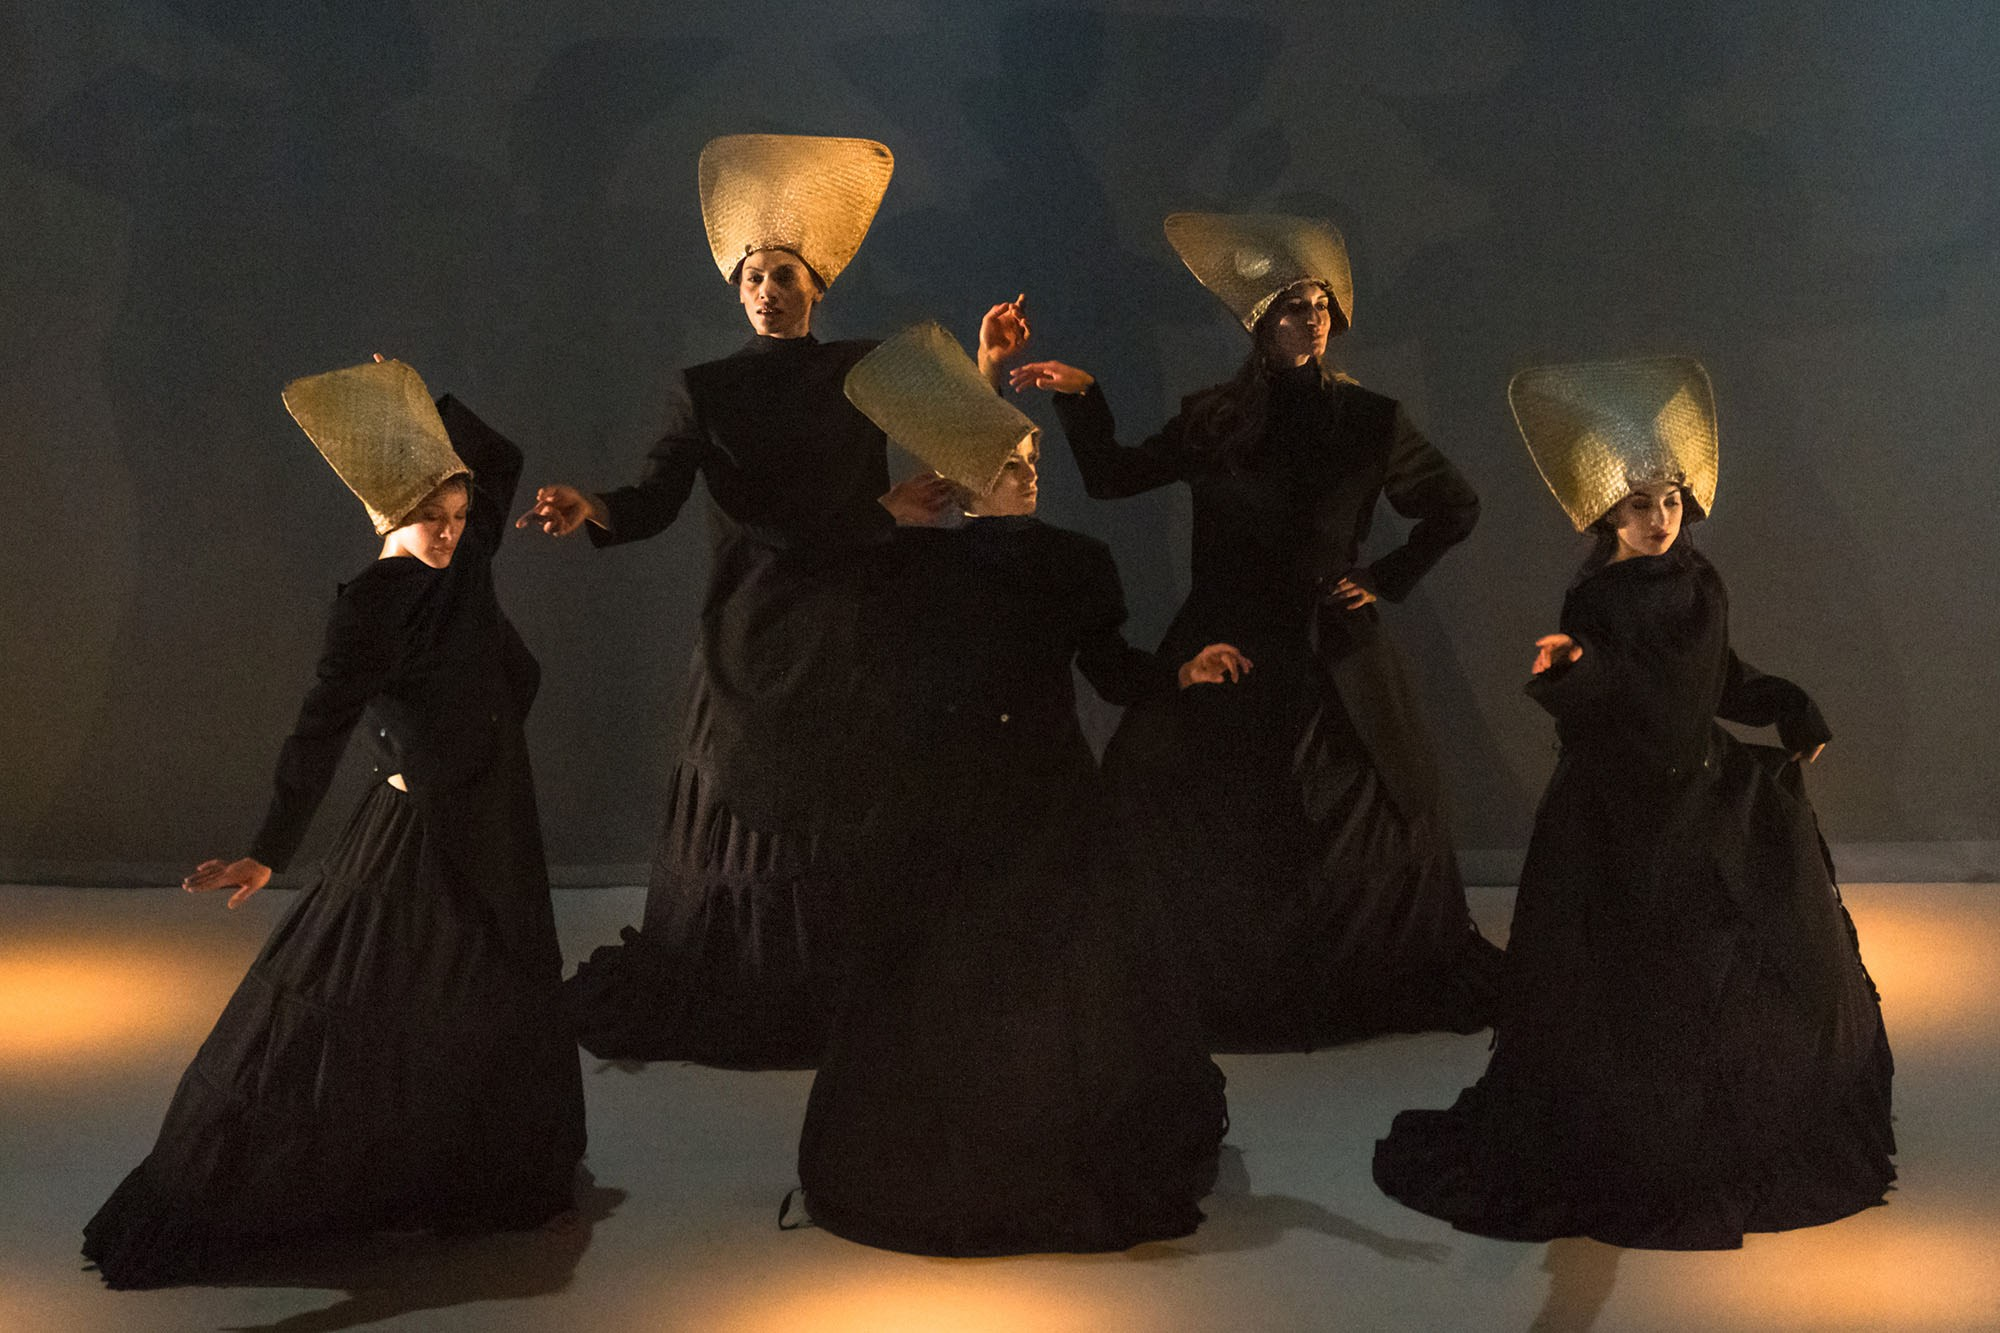 The five women dancers of Maha Wahine performing on stage in long black dresses and stylized headpieces